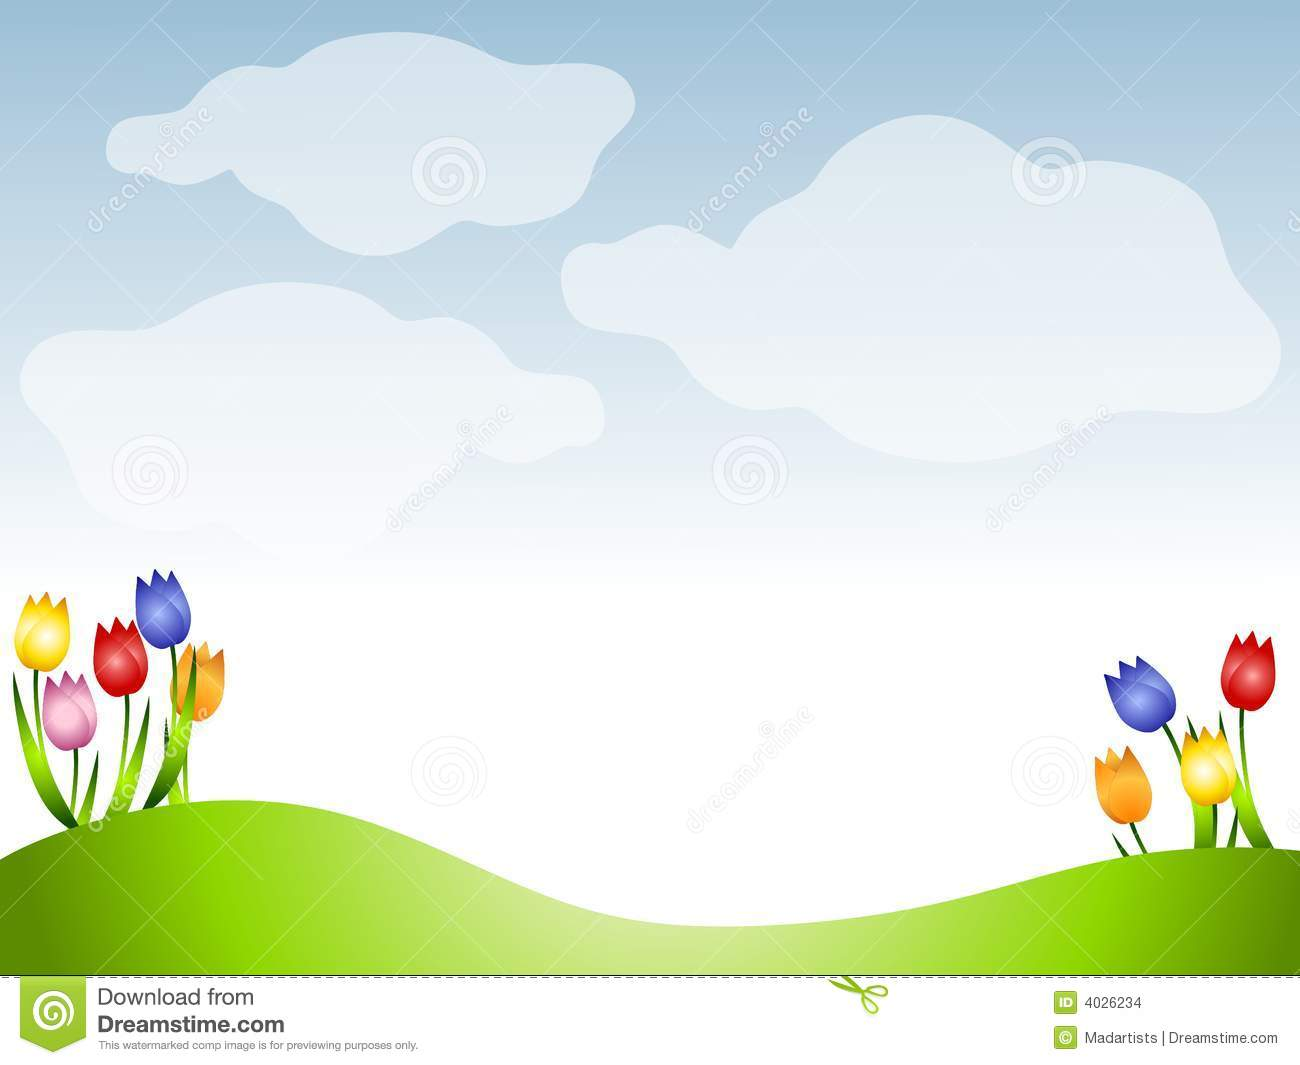 Clipart meadow background.